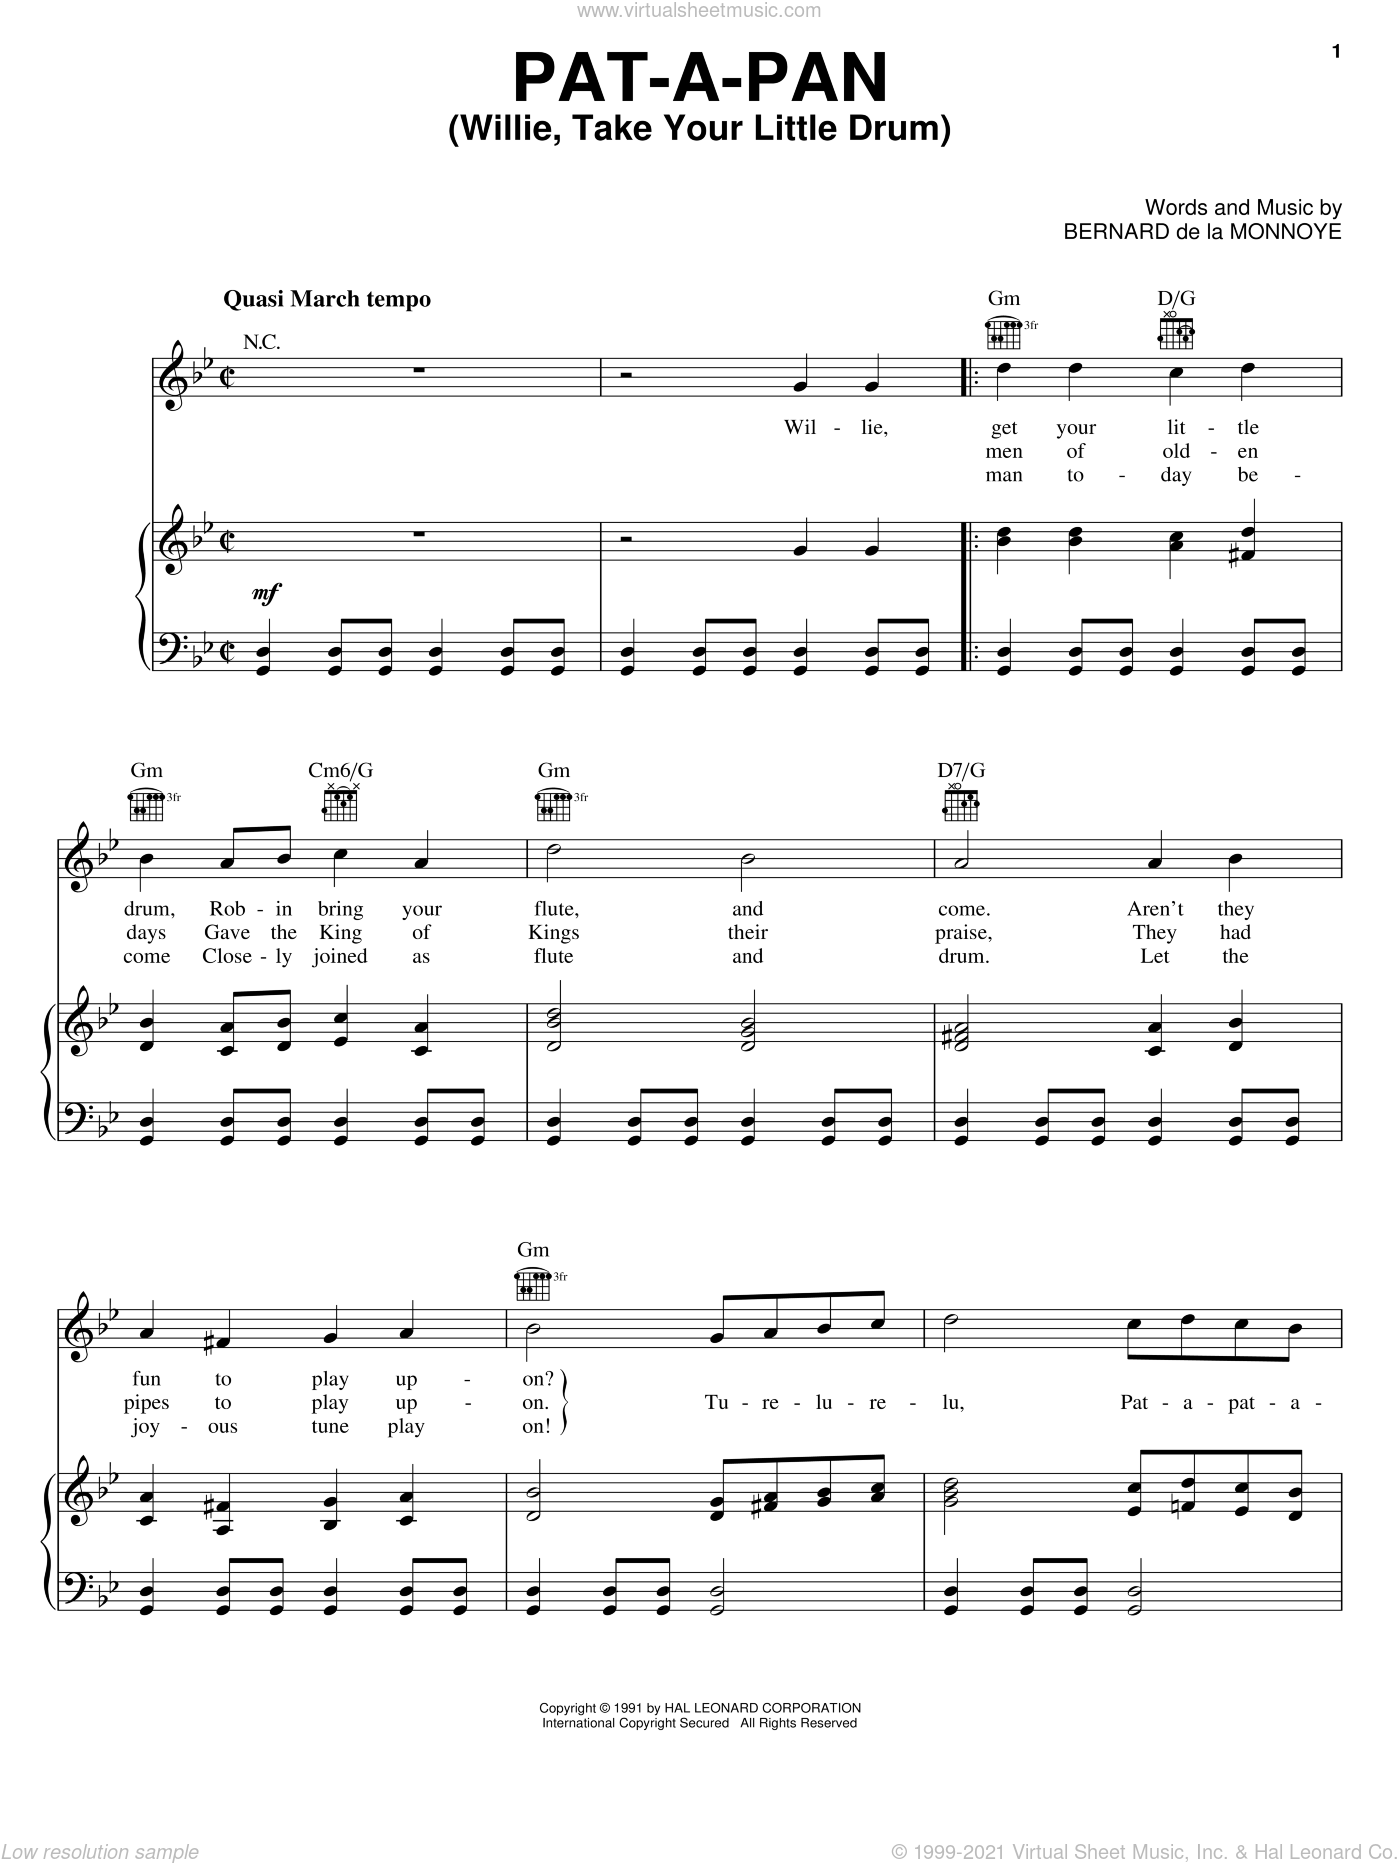 Pat-A-Pan (Willie, Take Your Little Drum) sheet music for voice, piano or guitar by Bernard de la Monnoye, intermediate skill level